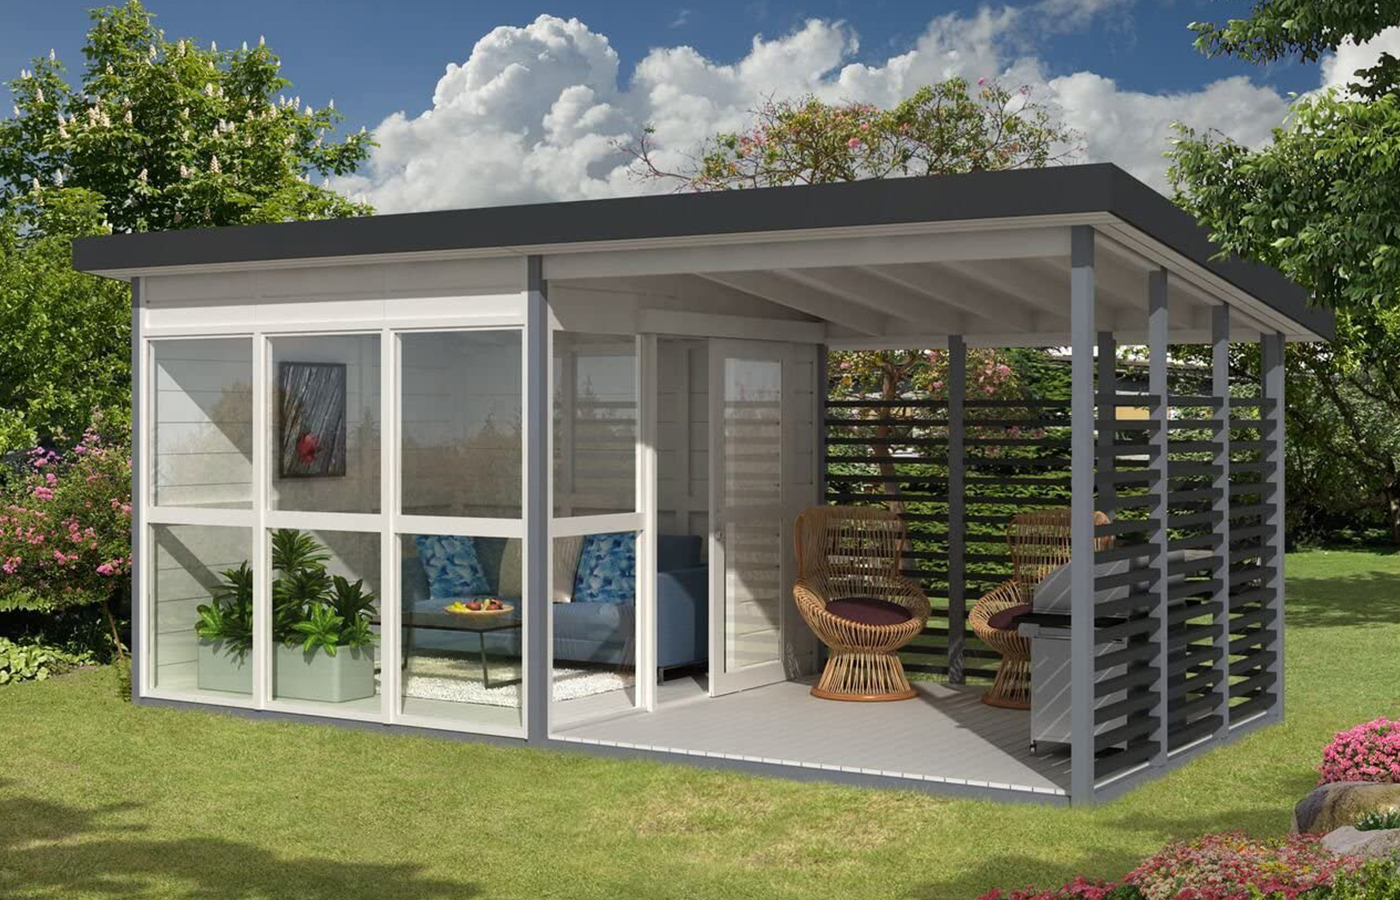 Amazon sells tiny houses for your backyard, and they're selling out fast